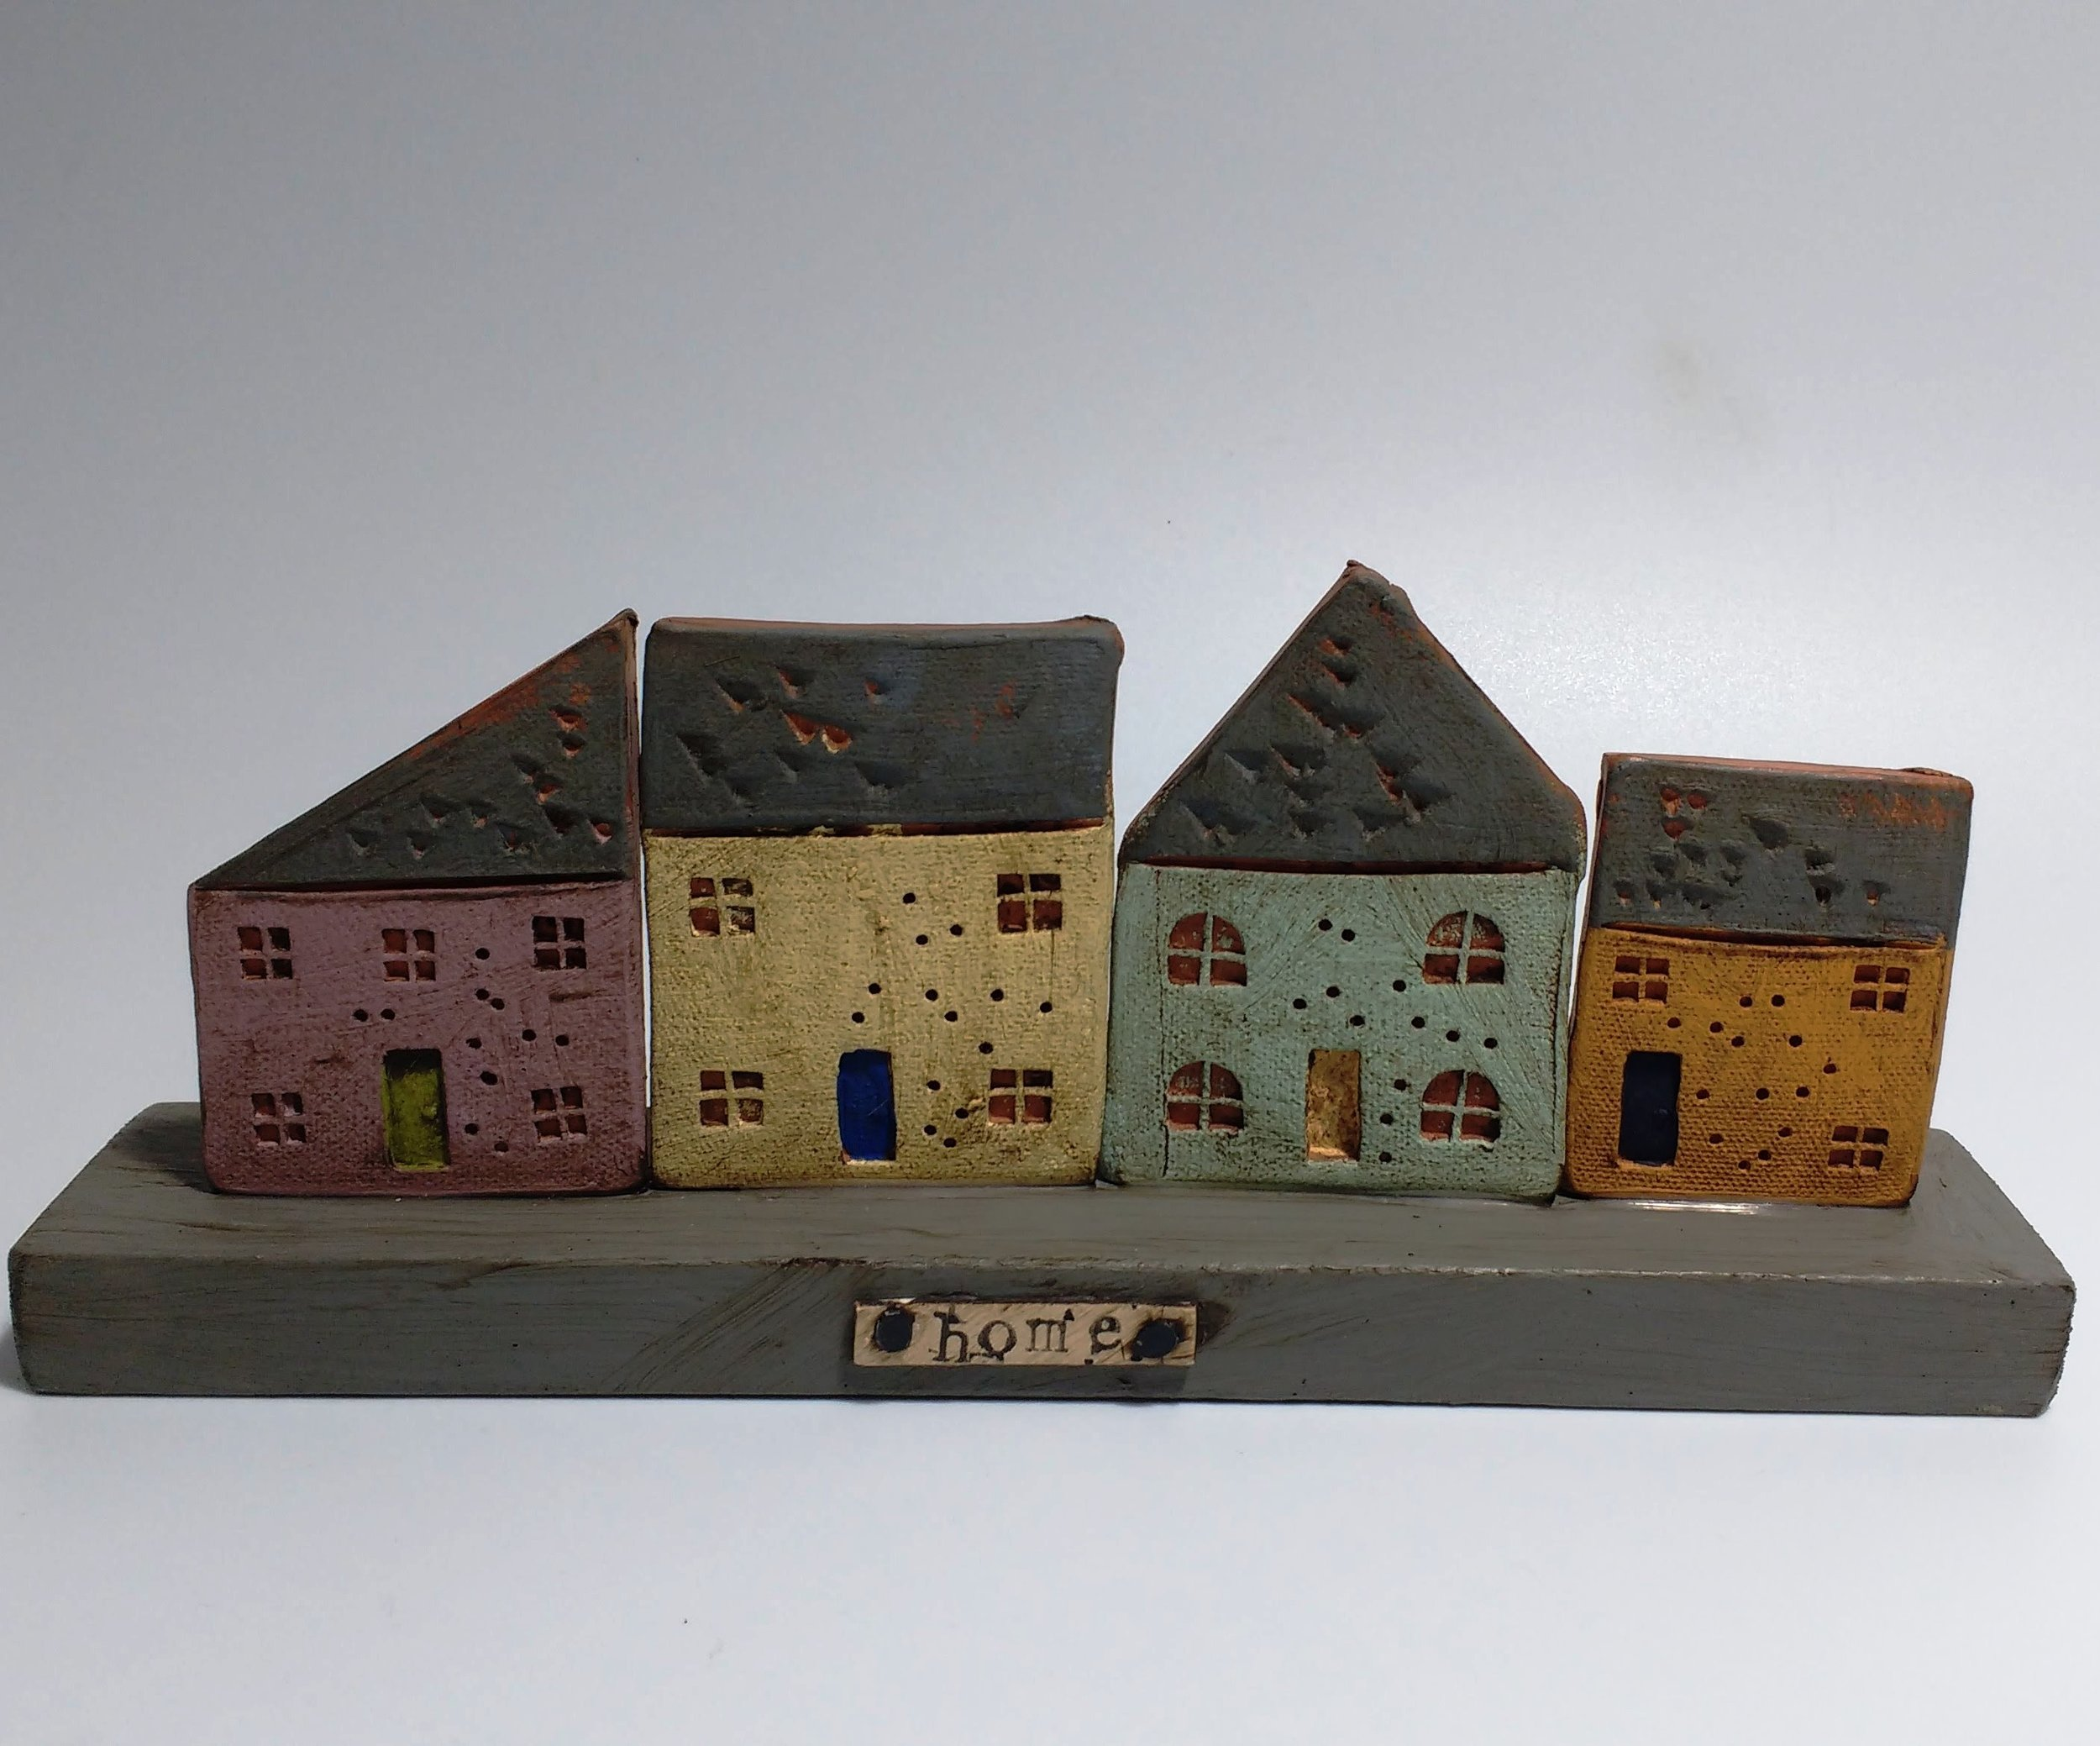 4 Houses No Trees  Ceramic on Wooden Plinth  £36